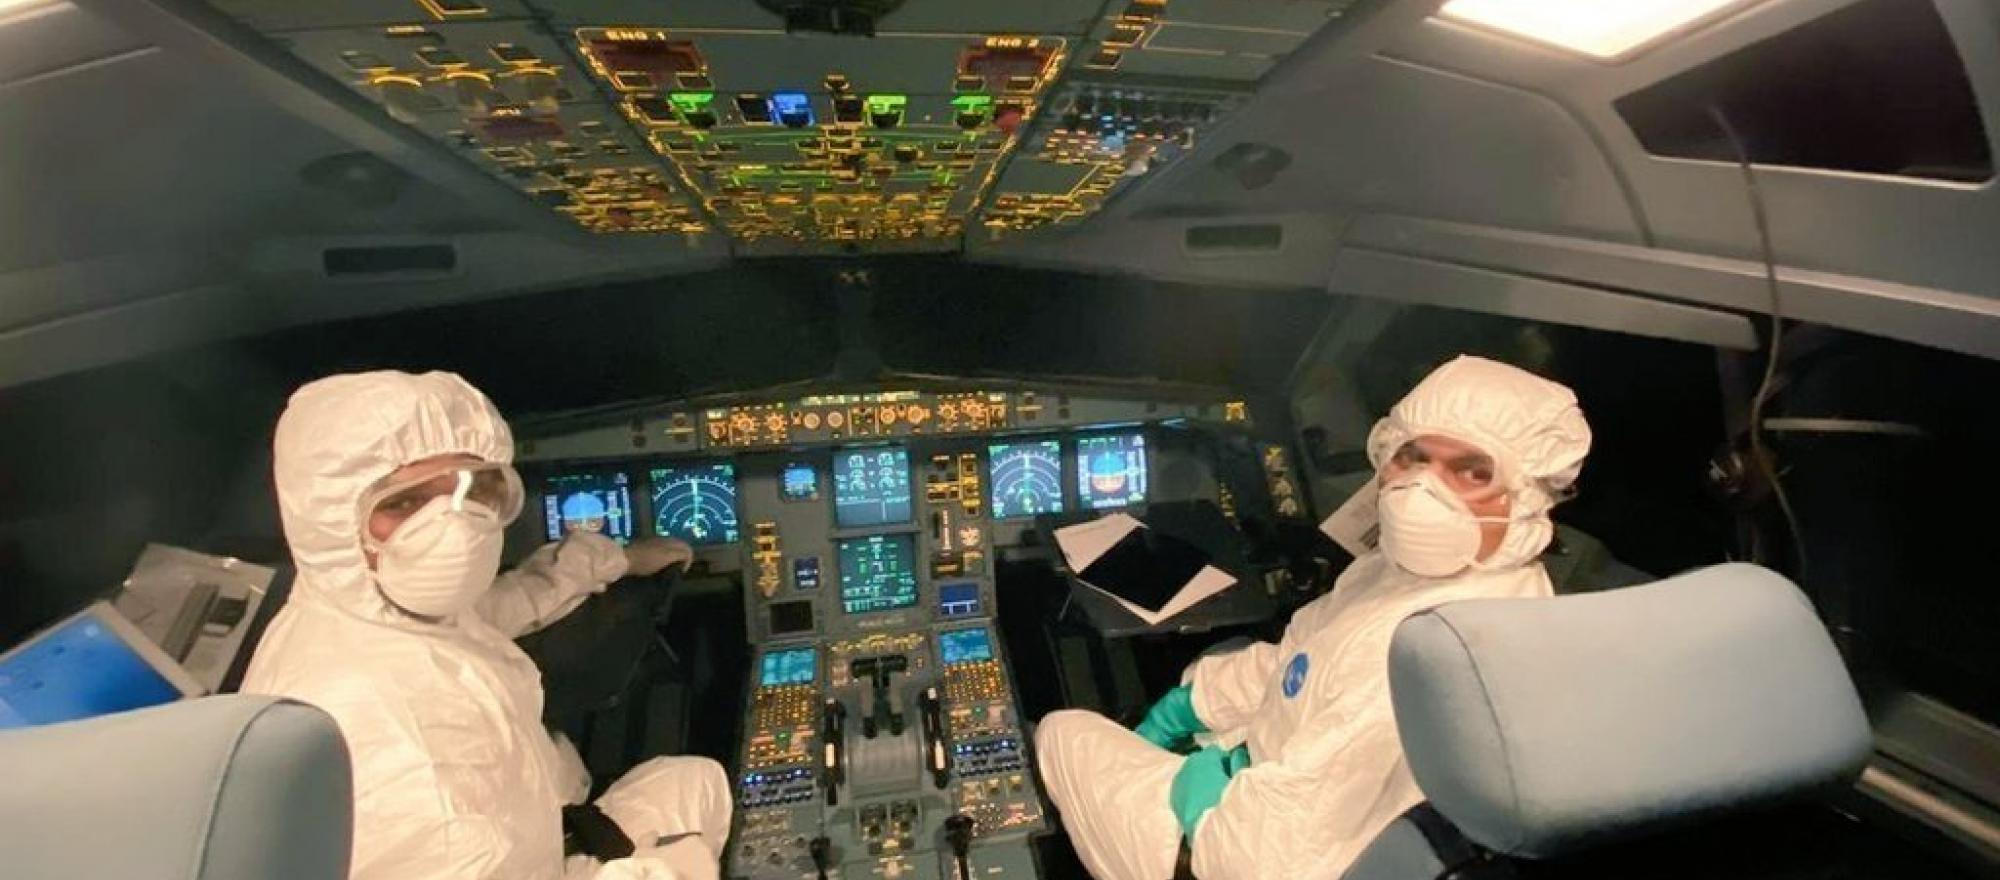 SriLankan Airlines pilots flying to China